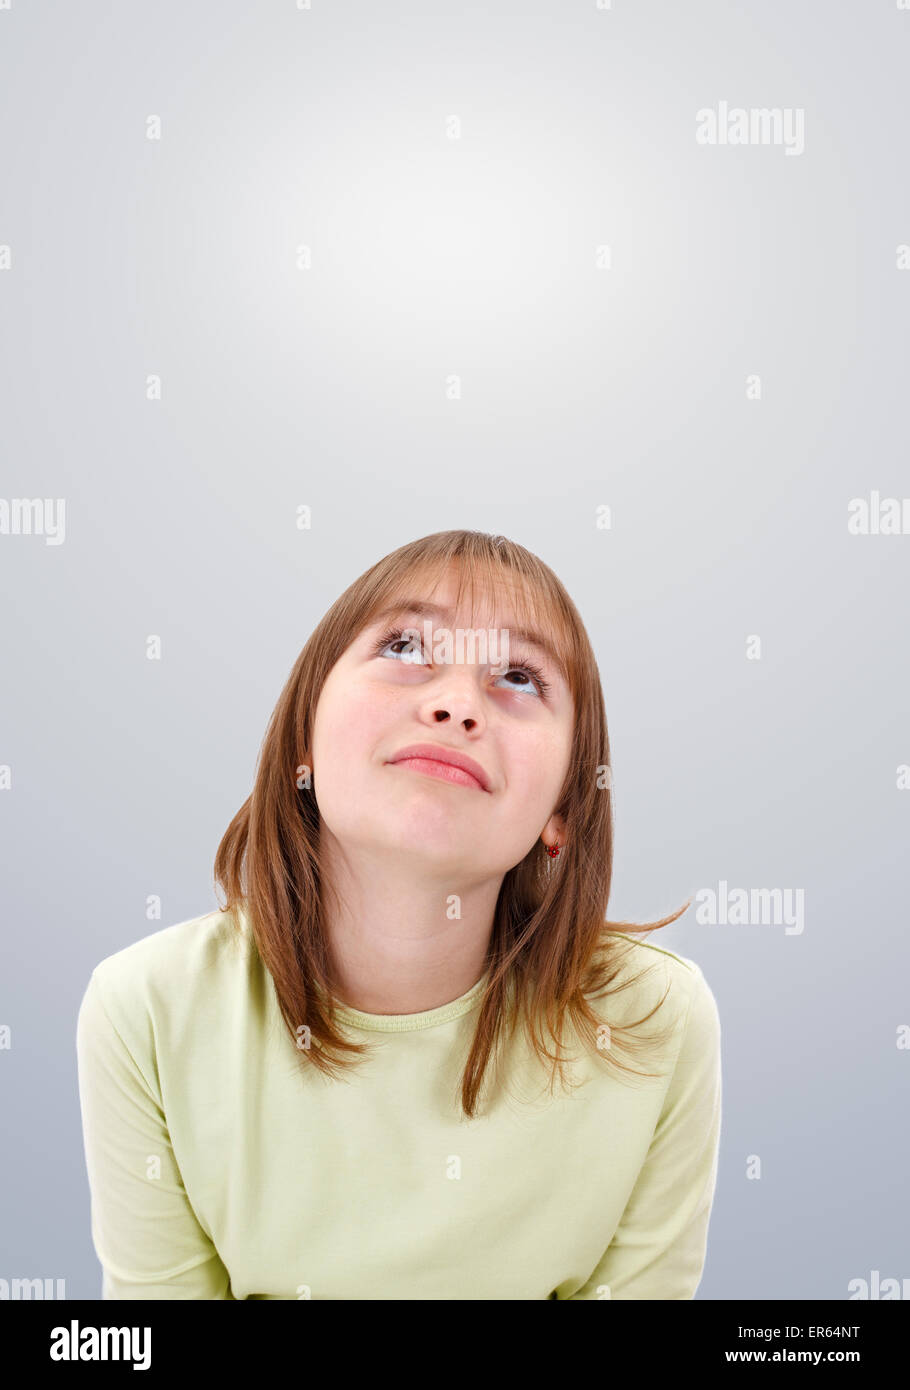 Teenager girl looking up dreamily to copy space - Stock Image